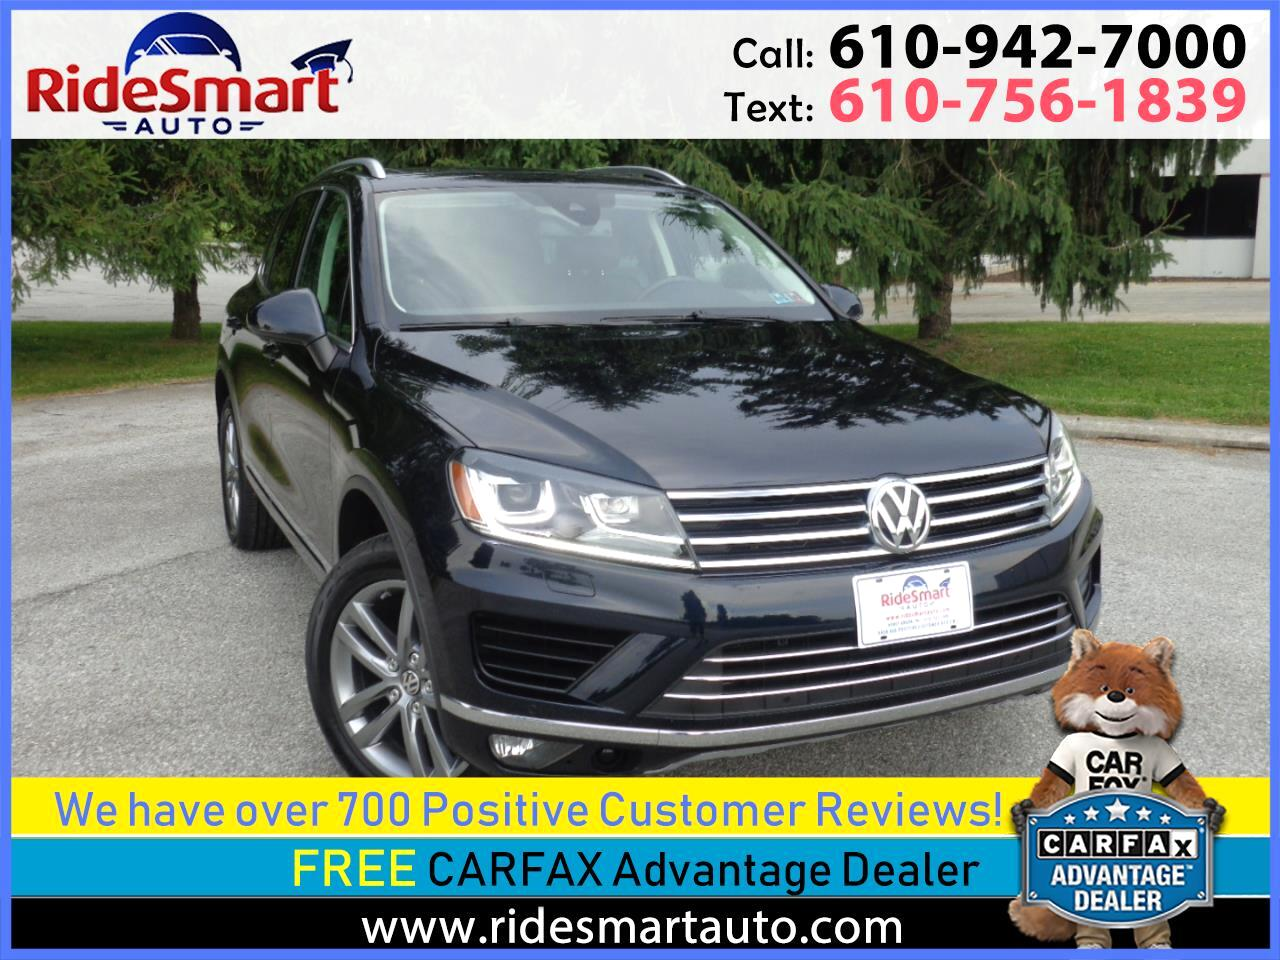 2016 Volkswagen Touareg VR6 Luxury AWD- Pano Sunroof-Leather-Navigation